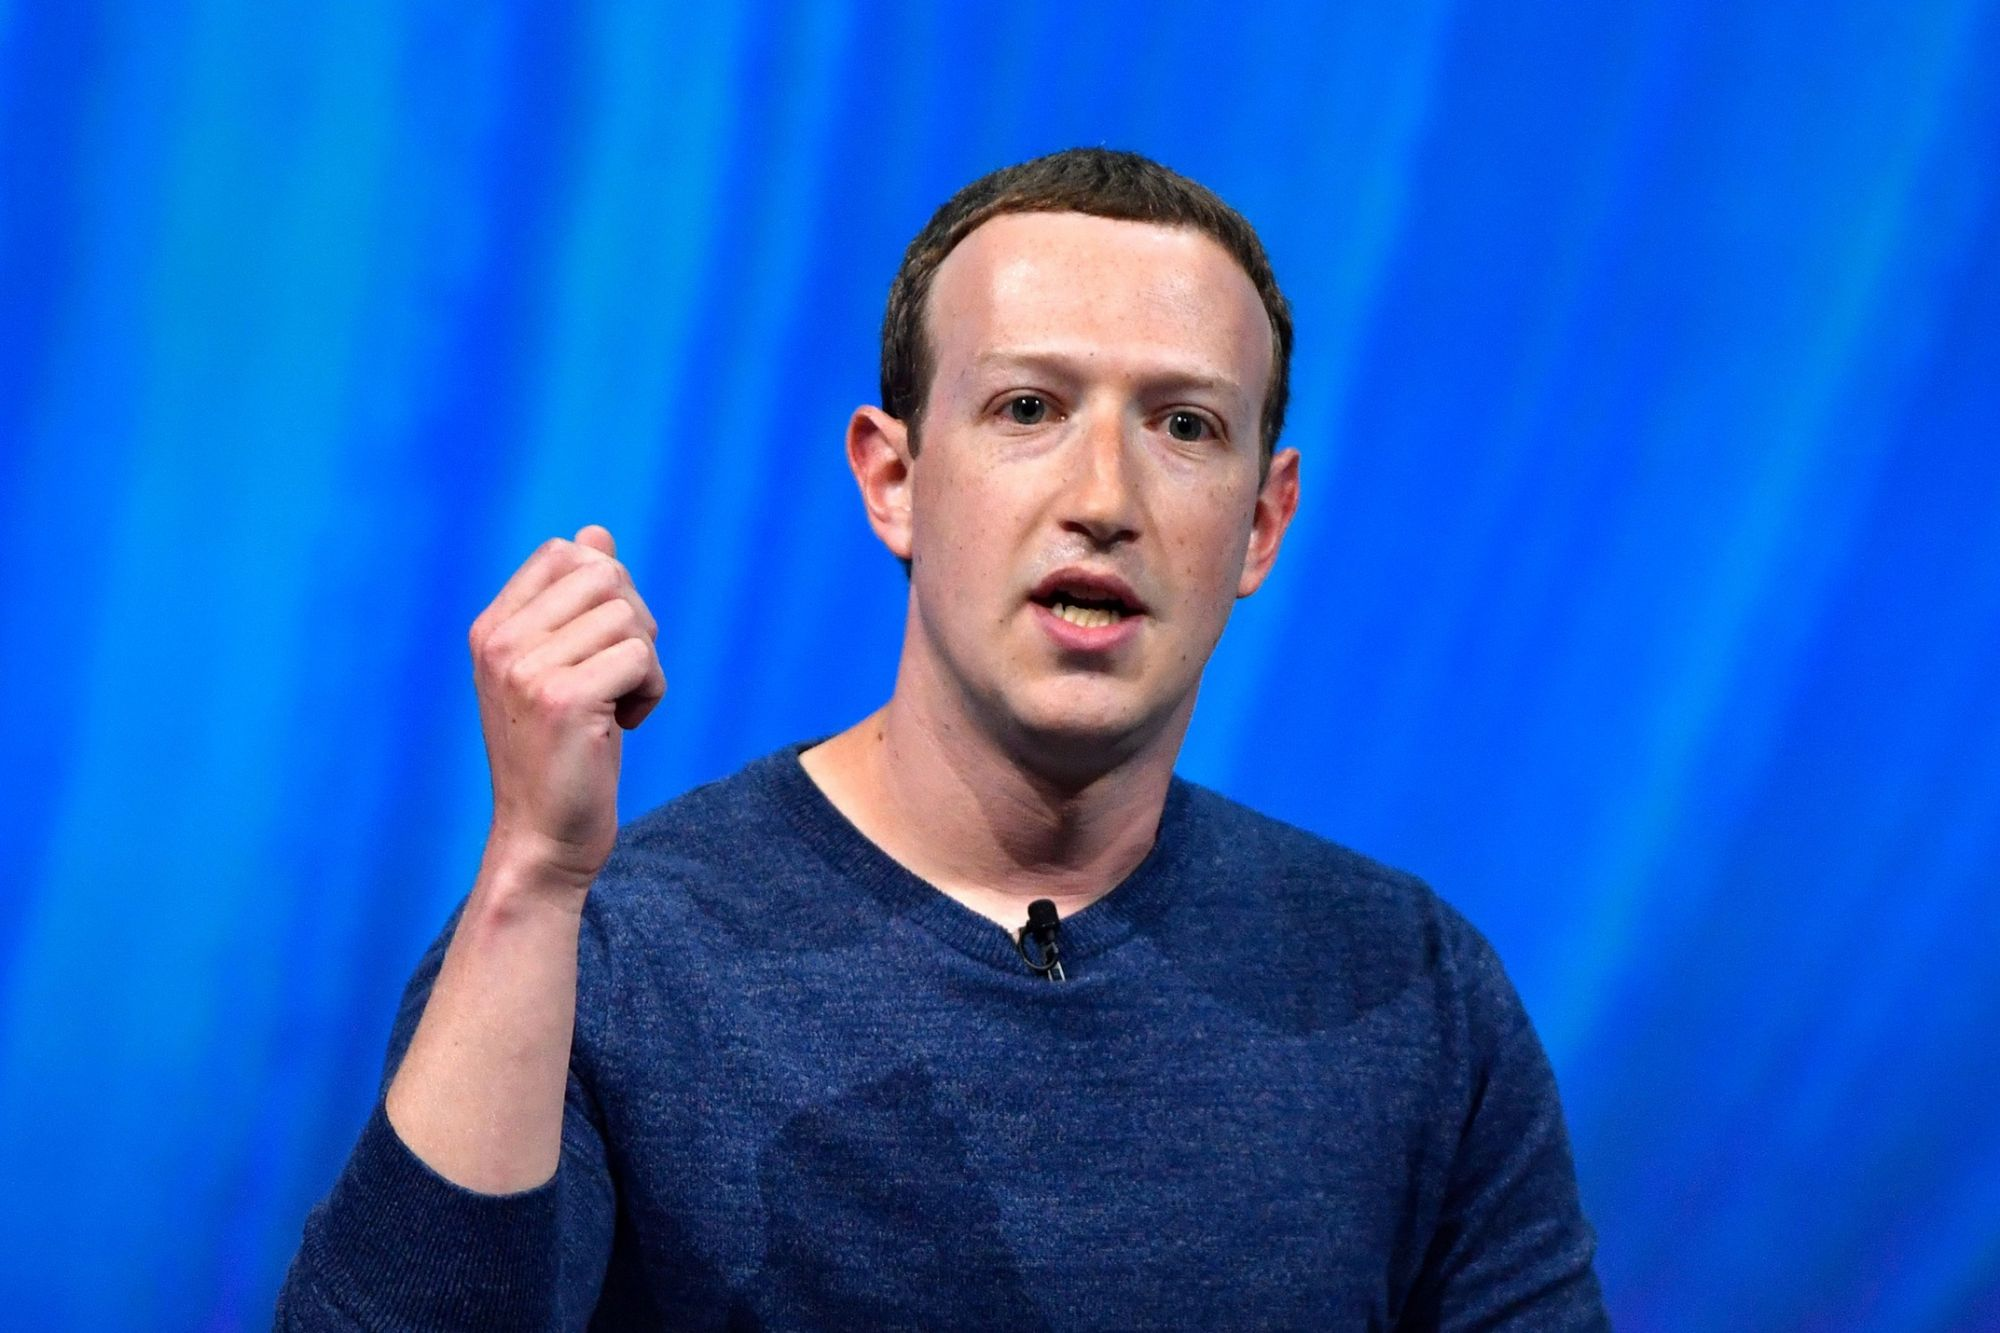 Mark Zuckerberg's 2019 New Year's Resolution Is Well-Meaning and Vague, Just Like Ours